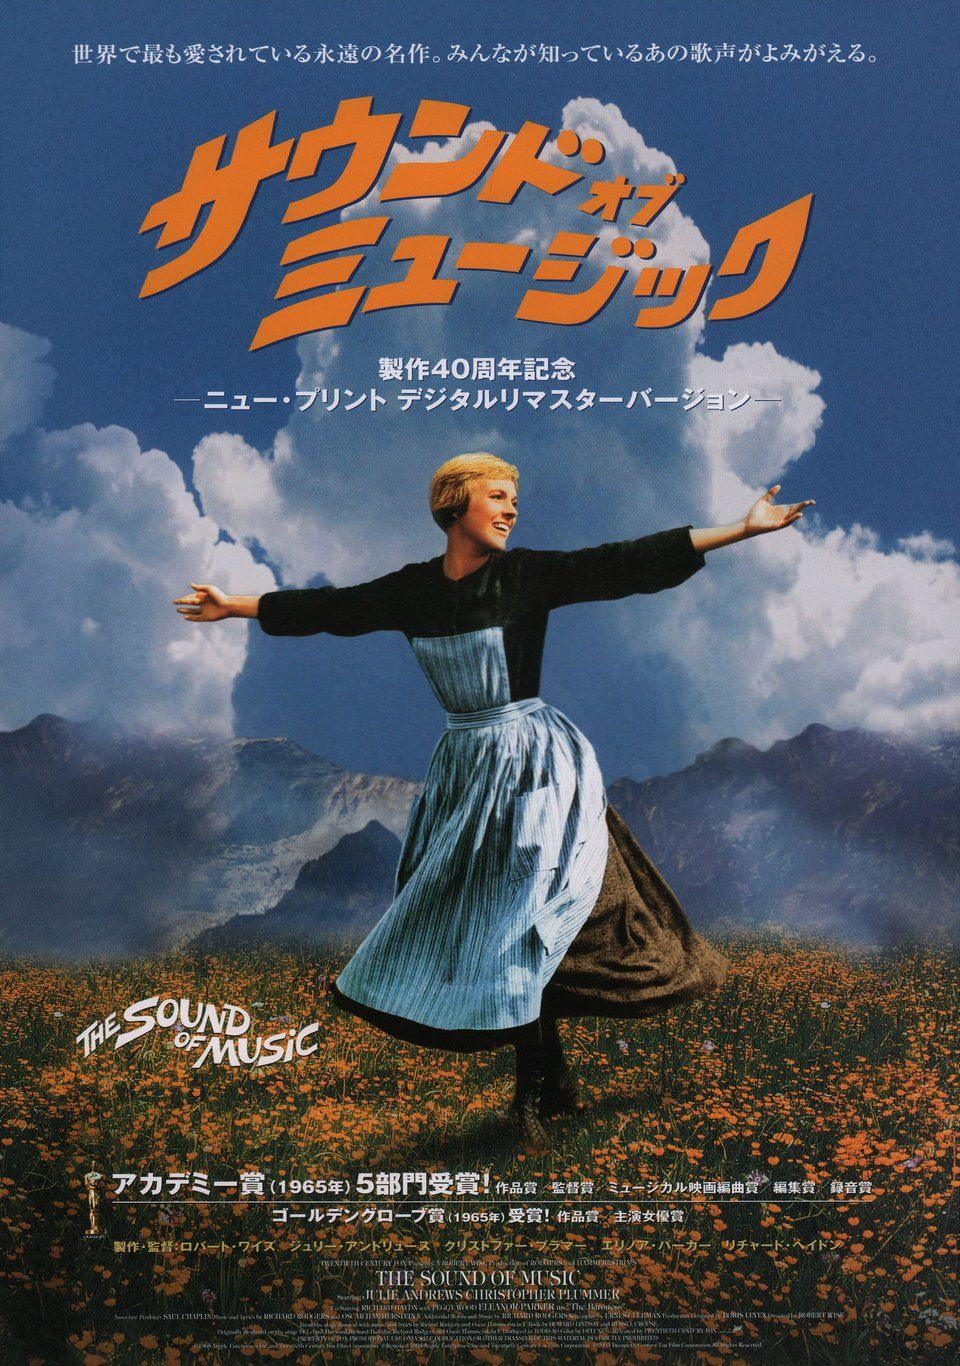 The Sound Of Music R2003 Japanese B5 Chirashi Flyer Posteritati Movie Poster Gallery New York Japanese Movie Poster Japanese Movie Sound Of Music